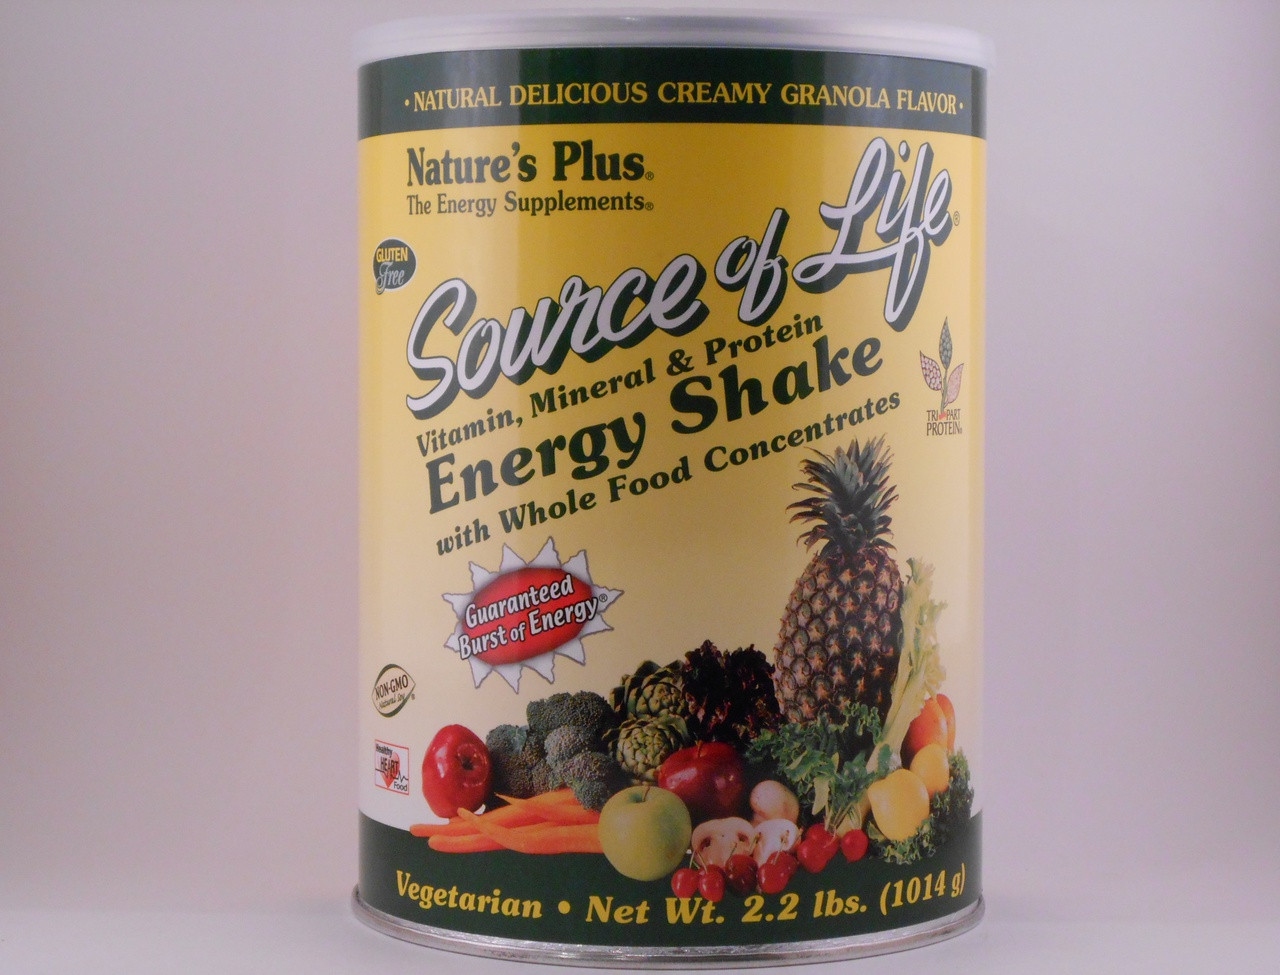 Source OF Life Energy Shake 2.2 LB